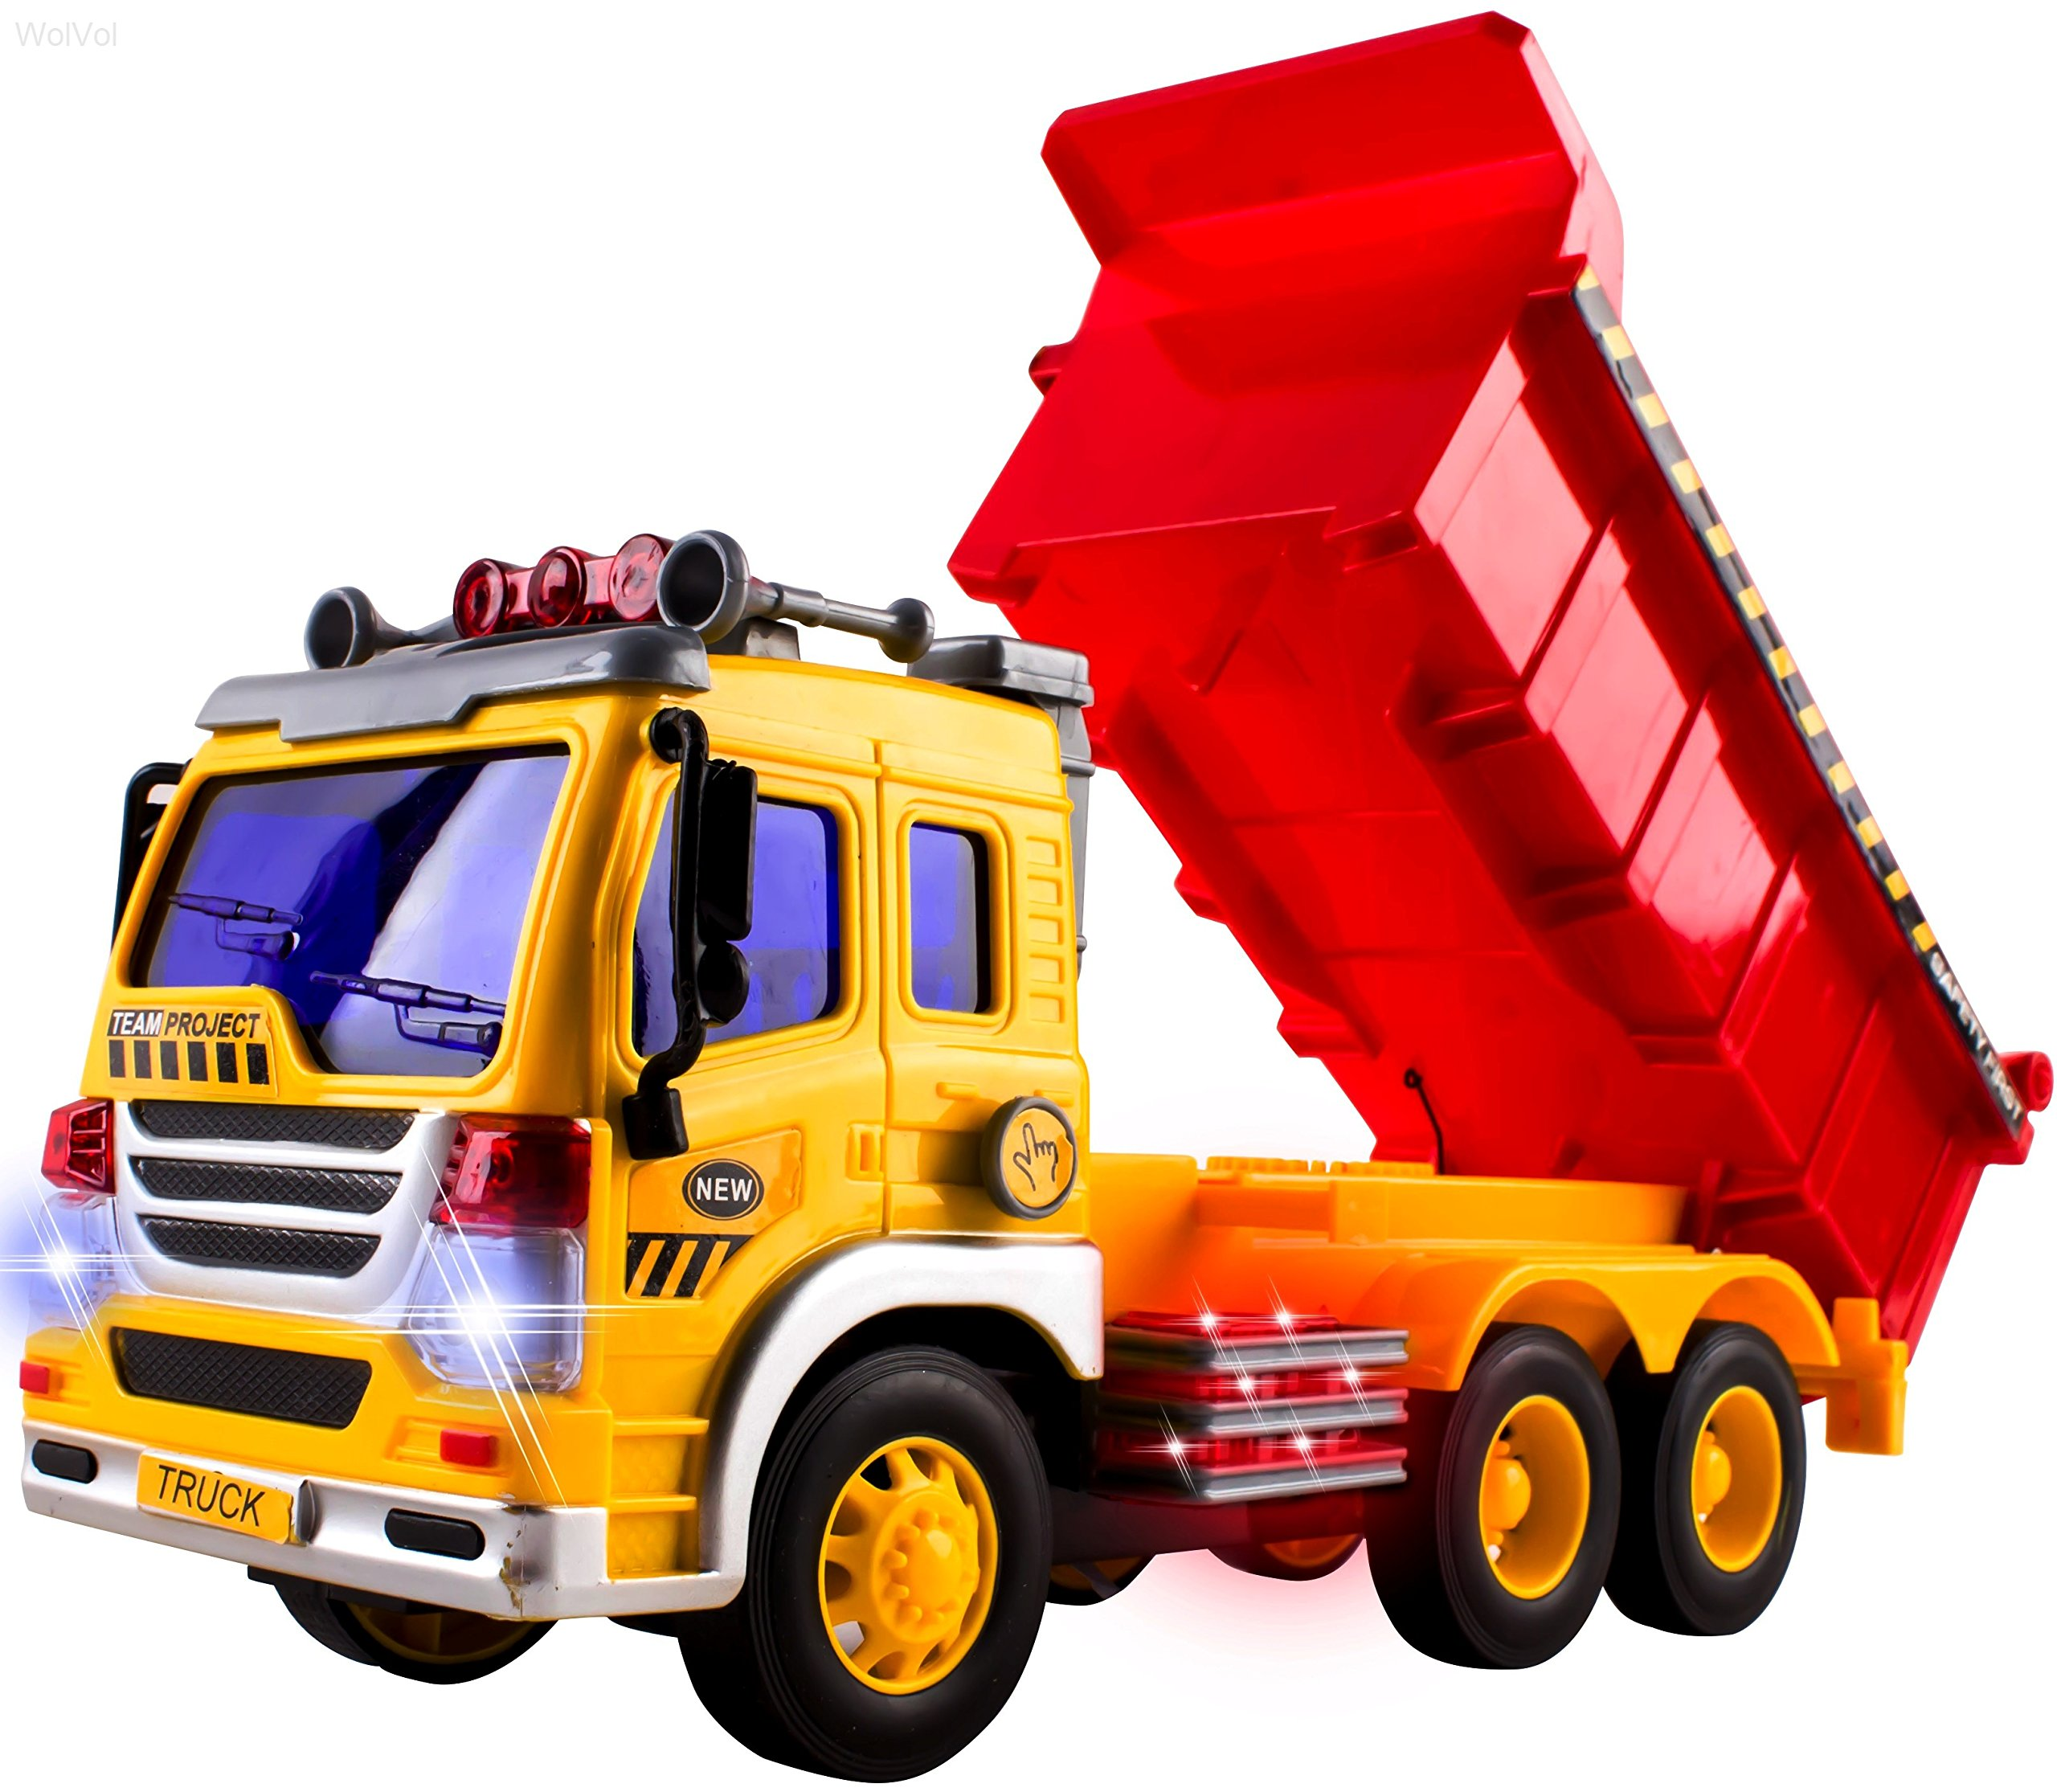 WolVol Friction Powered Dump Truck Toy - Premium Quality Plastic Heavy Equipment Vehicle Toy Battery Operated with Lights & Sounds - Fun Gift for All Occasions for Kids Boys Girls